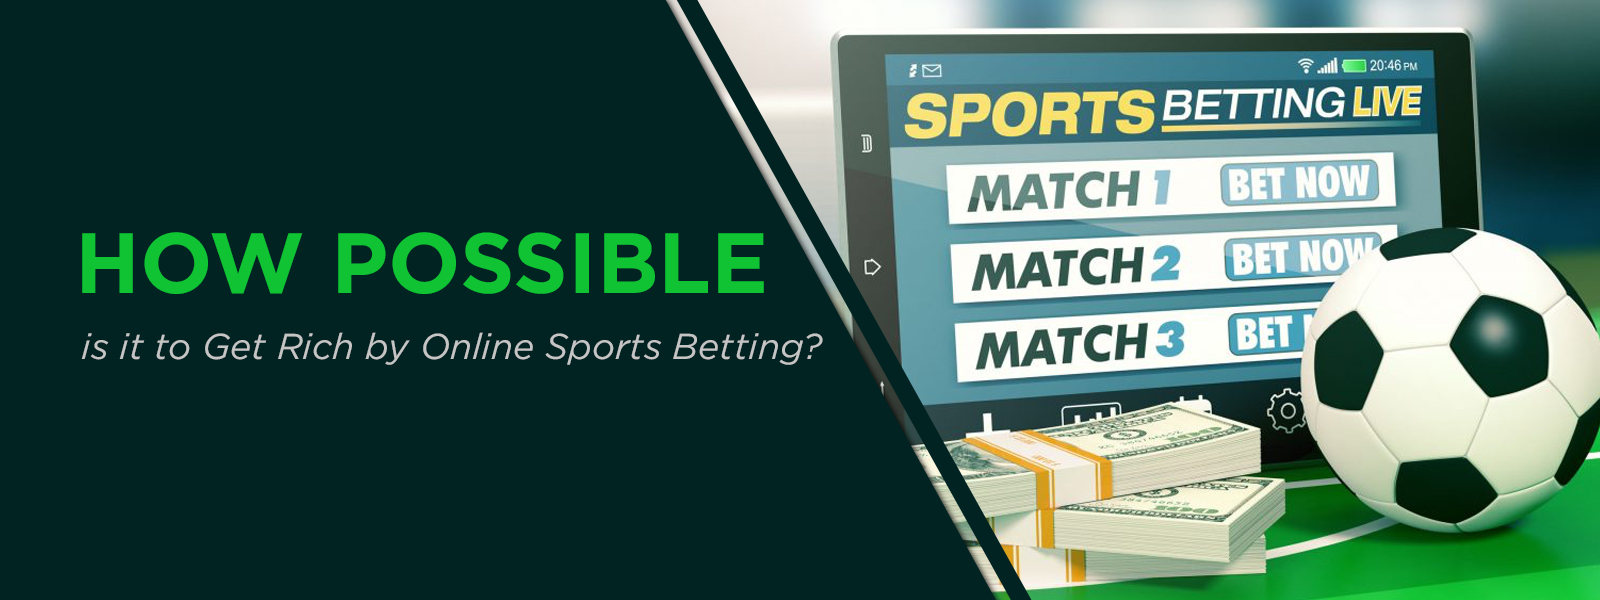 Is It Possible To Get Rich With Online Sports Betting?